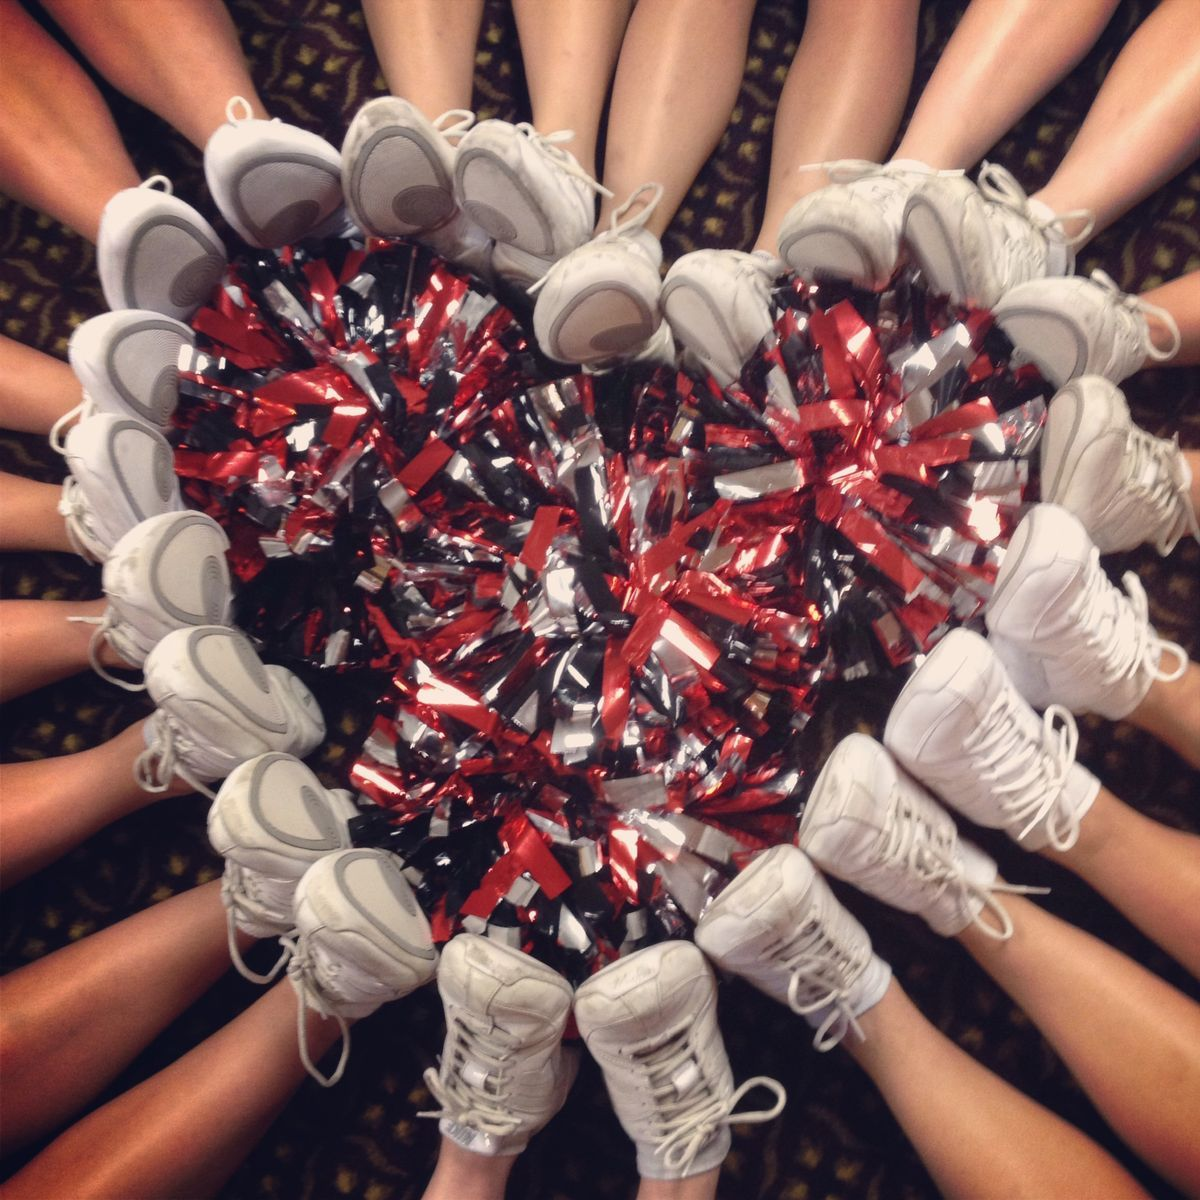 I'm so doing this with my cheer team